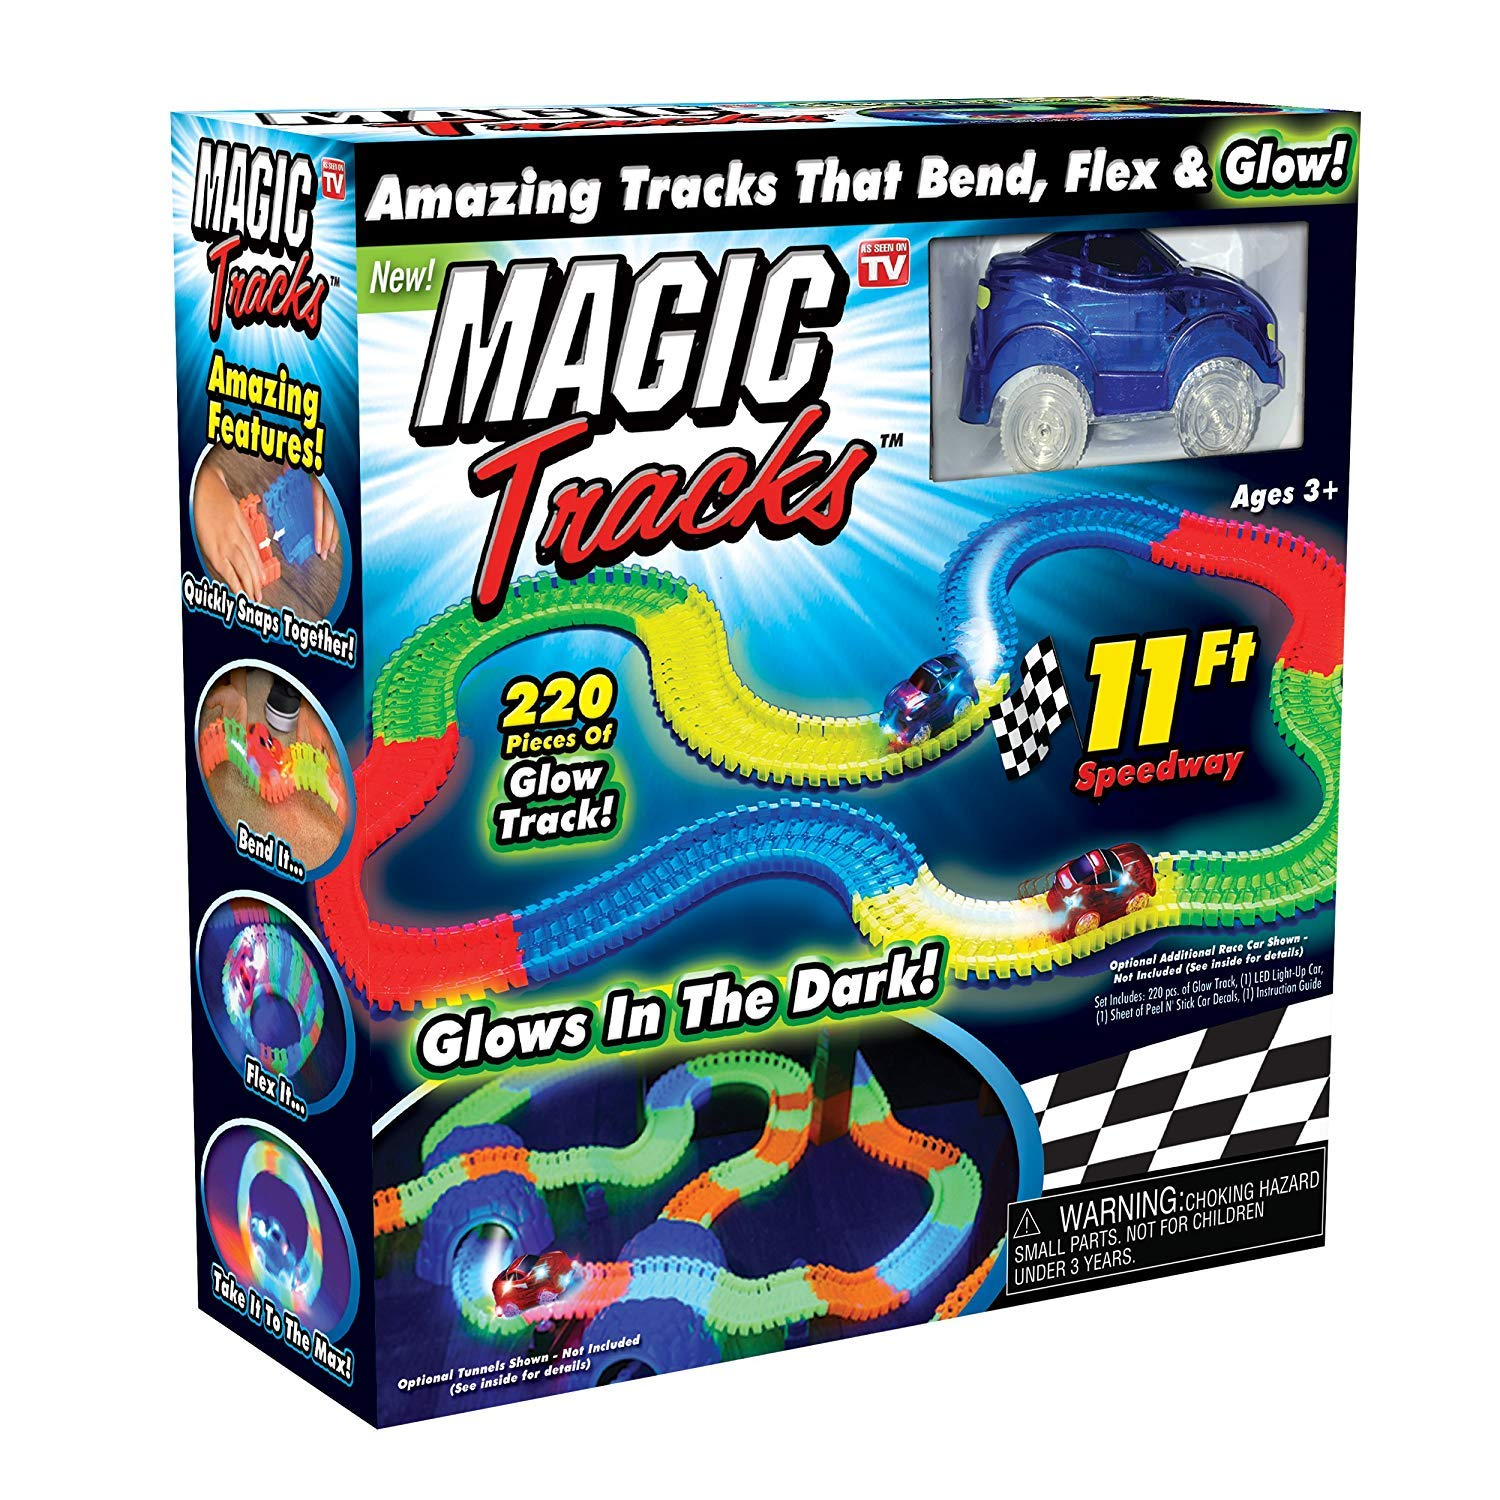 Toyshine Tracks Set Glow Race Car Set Toy Educational Twisted Flexible Tracks 165 Pcs with Electric Car Toys Kids